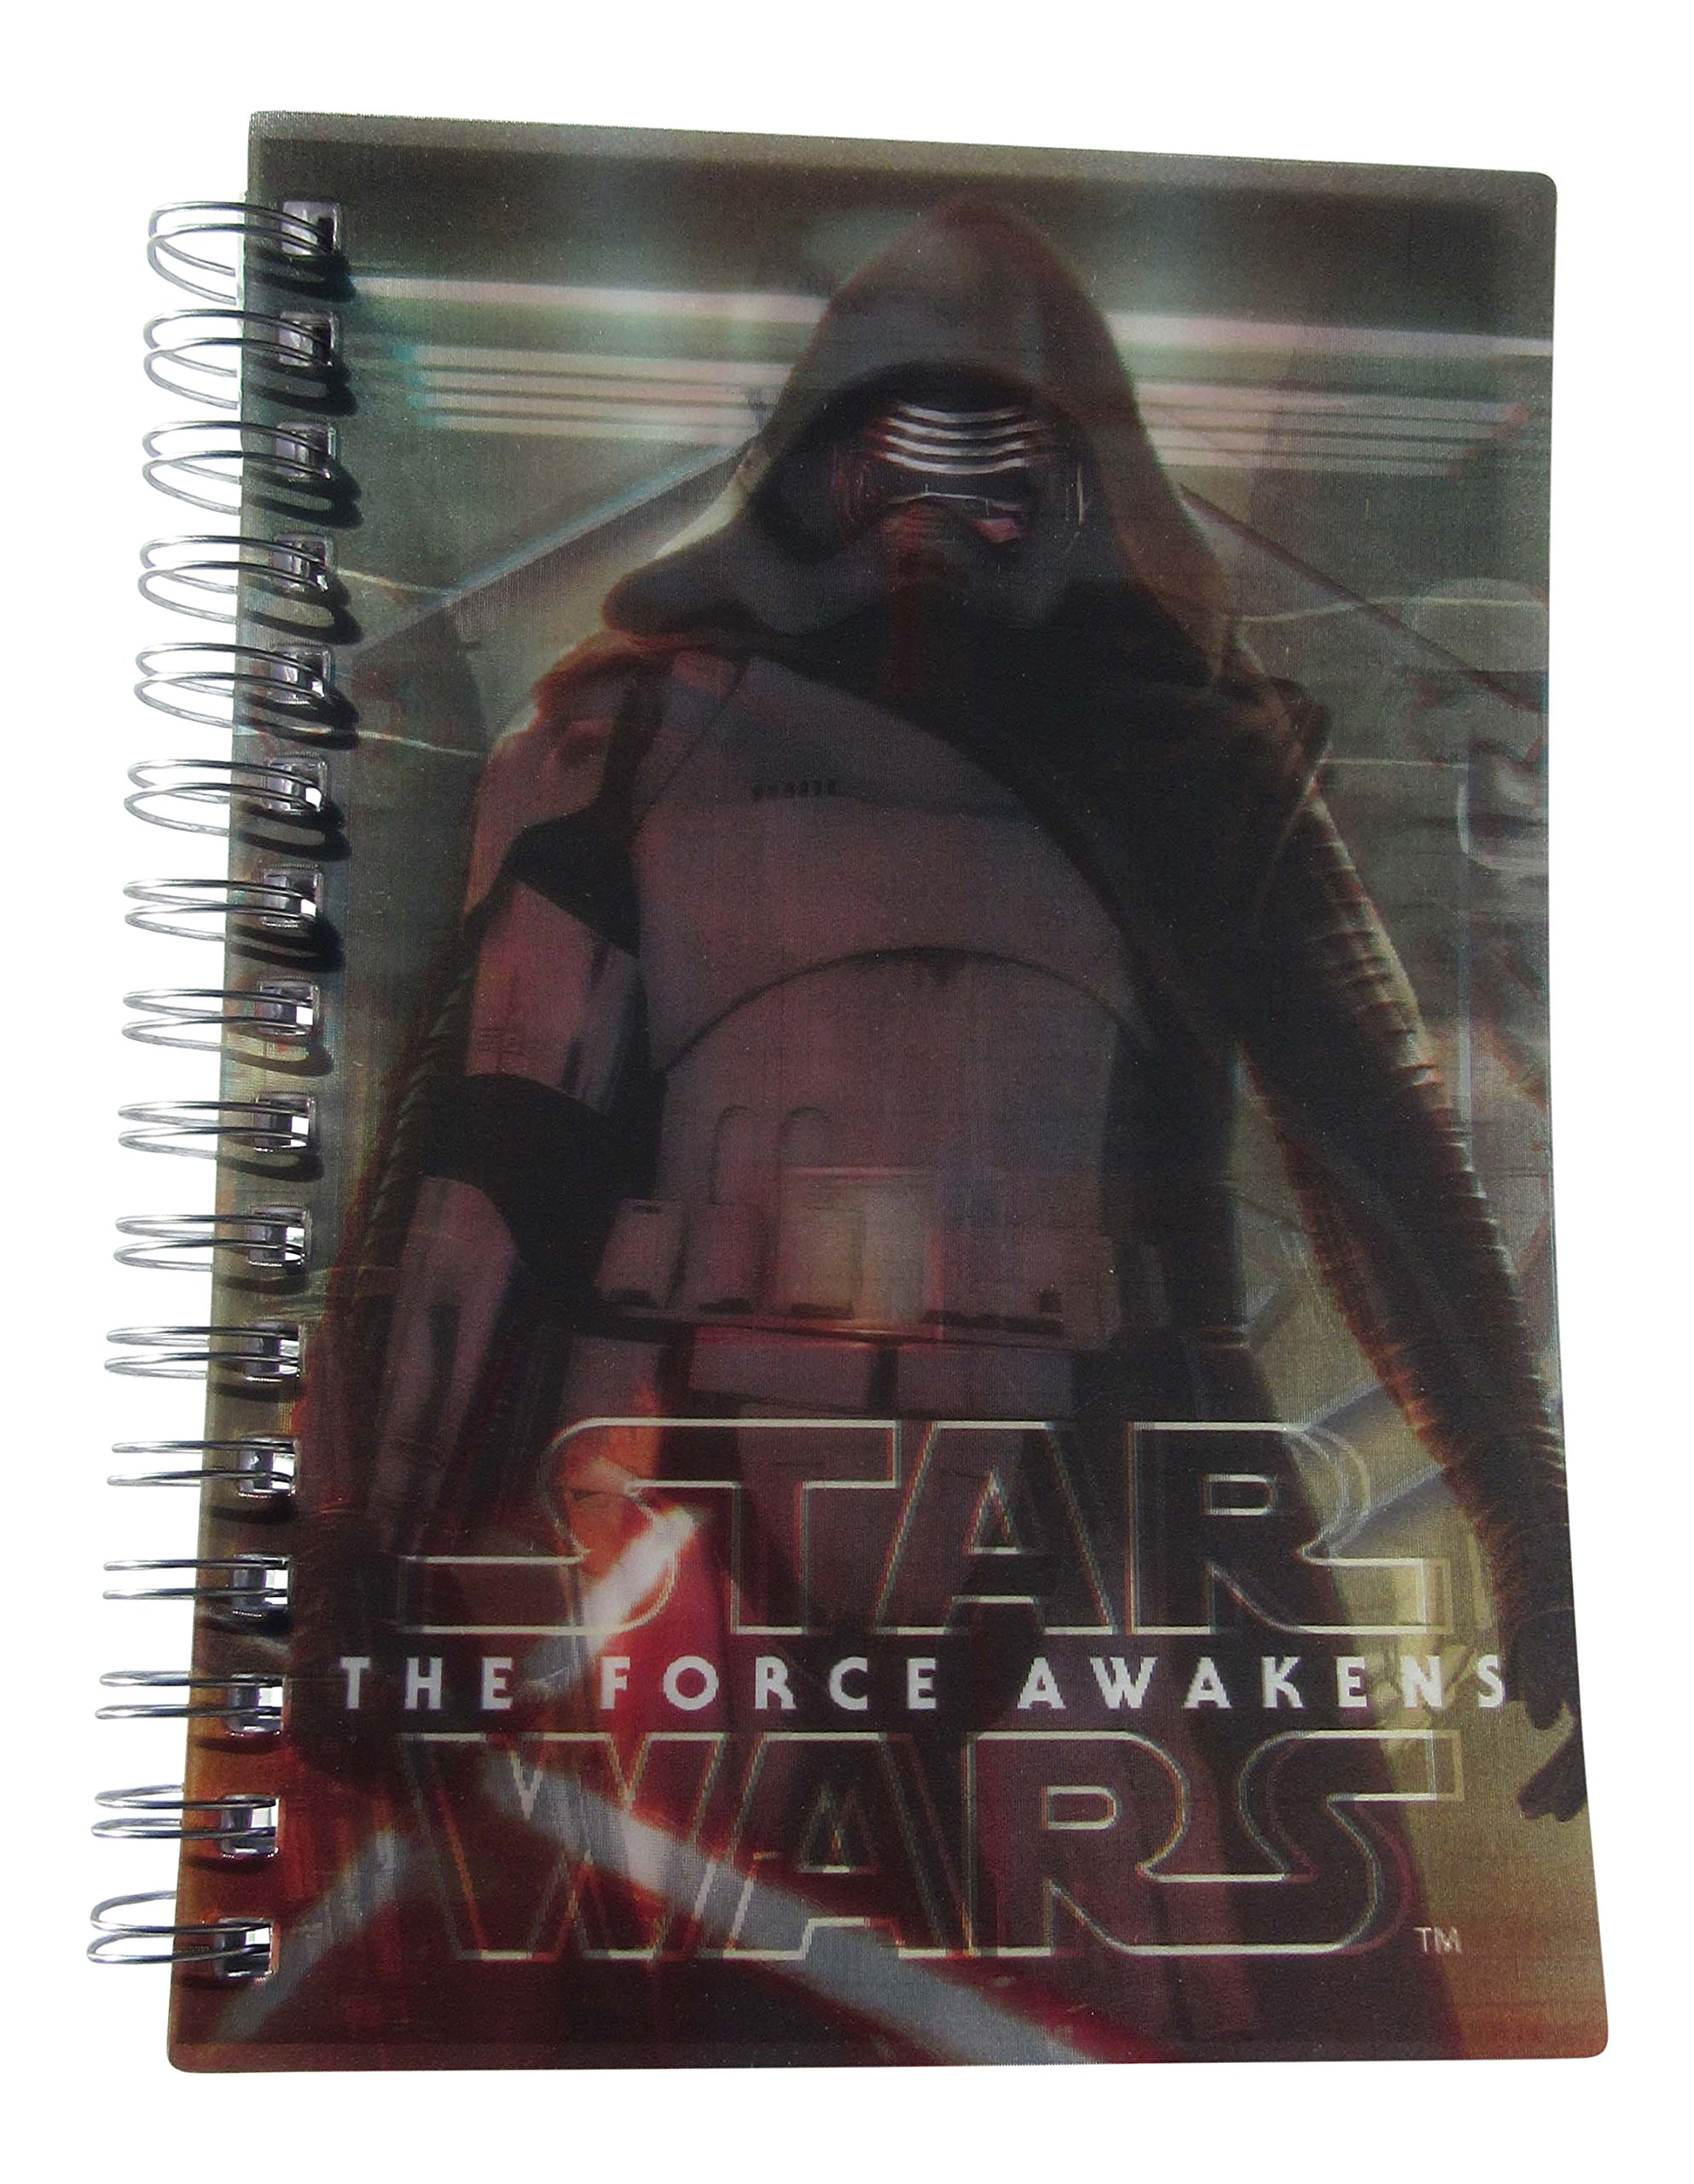 Disney Star Wars Episode VII The Force Awakens - Darth Vadar and Stormtrooper 3D Spiral Journal Notebook - 220 Pages - College Ruled - 8 x 5 Inches